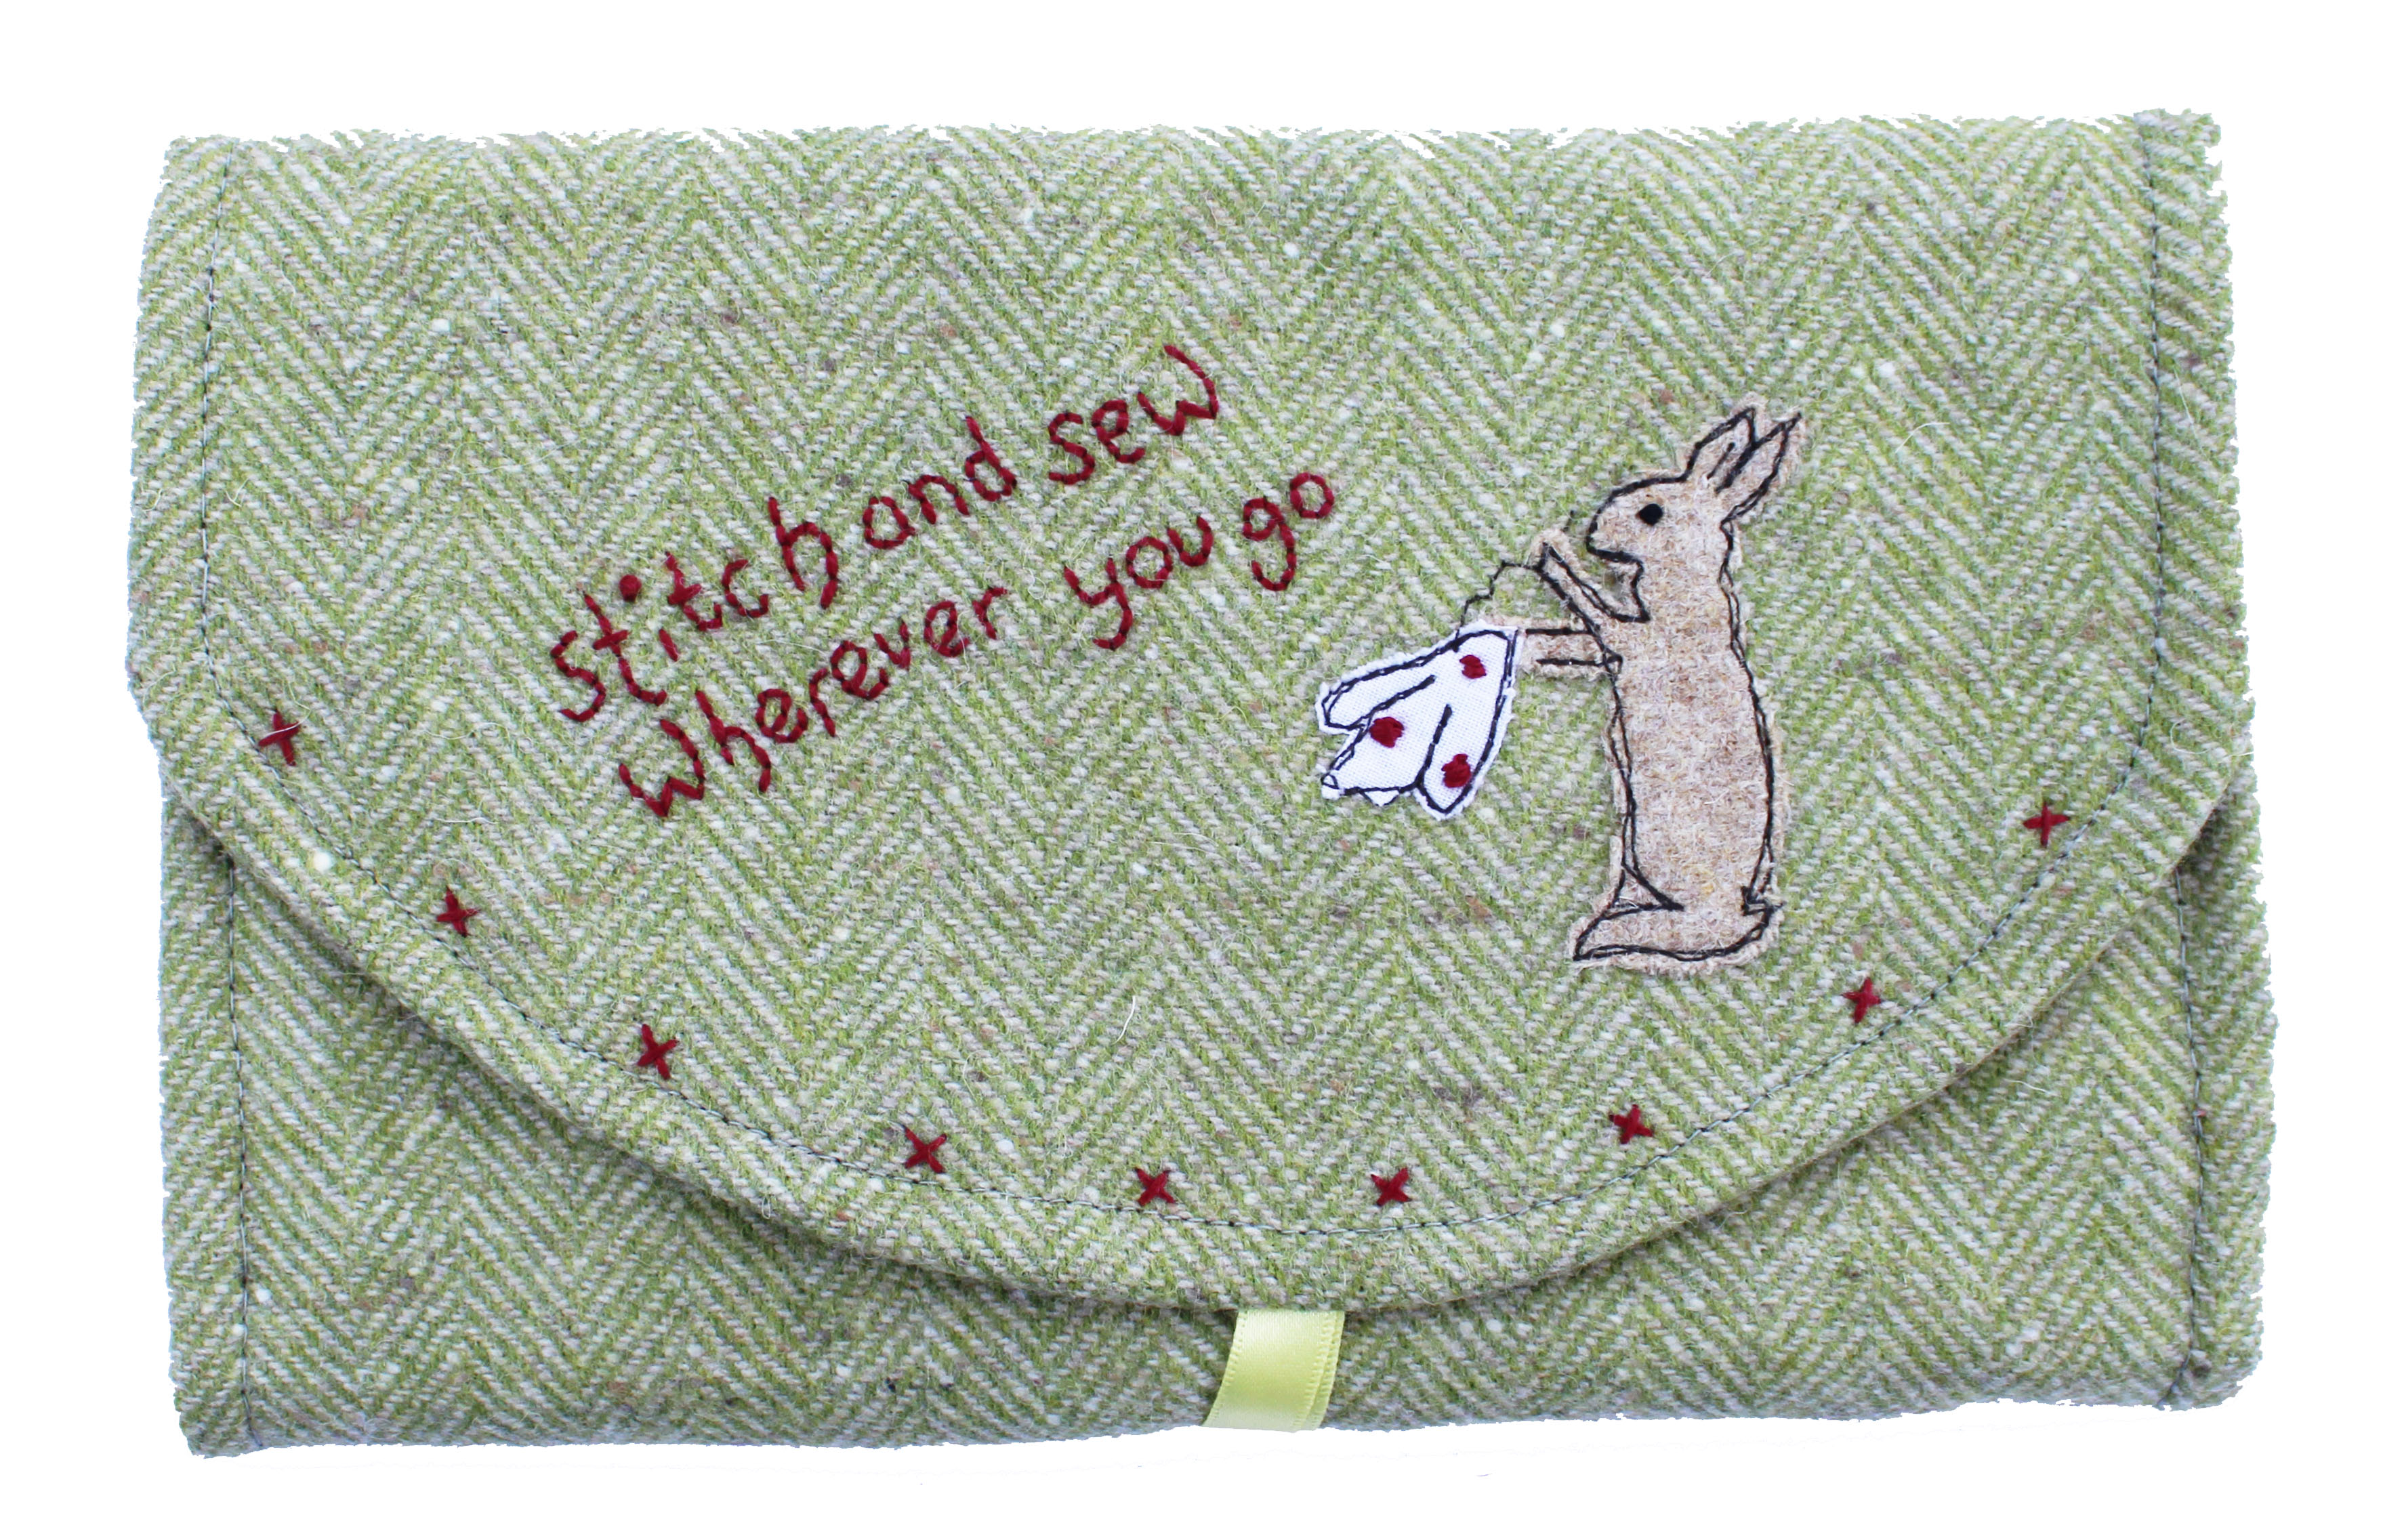 Stitch and Sew Wherever You Go Applique Purse Sewing Pattern